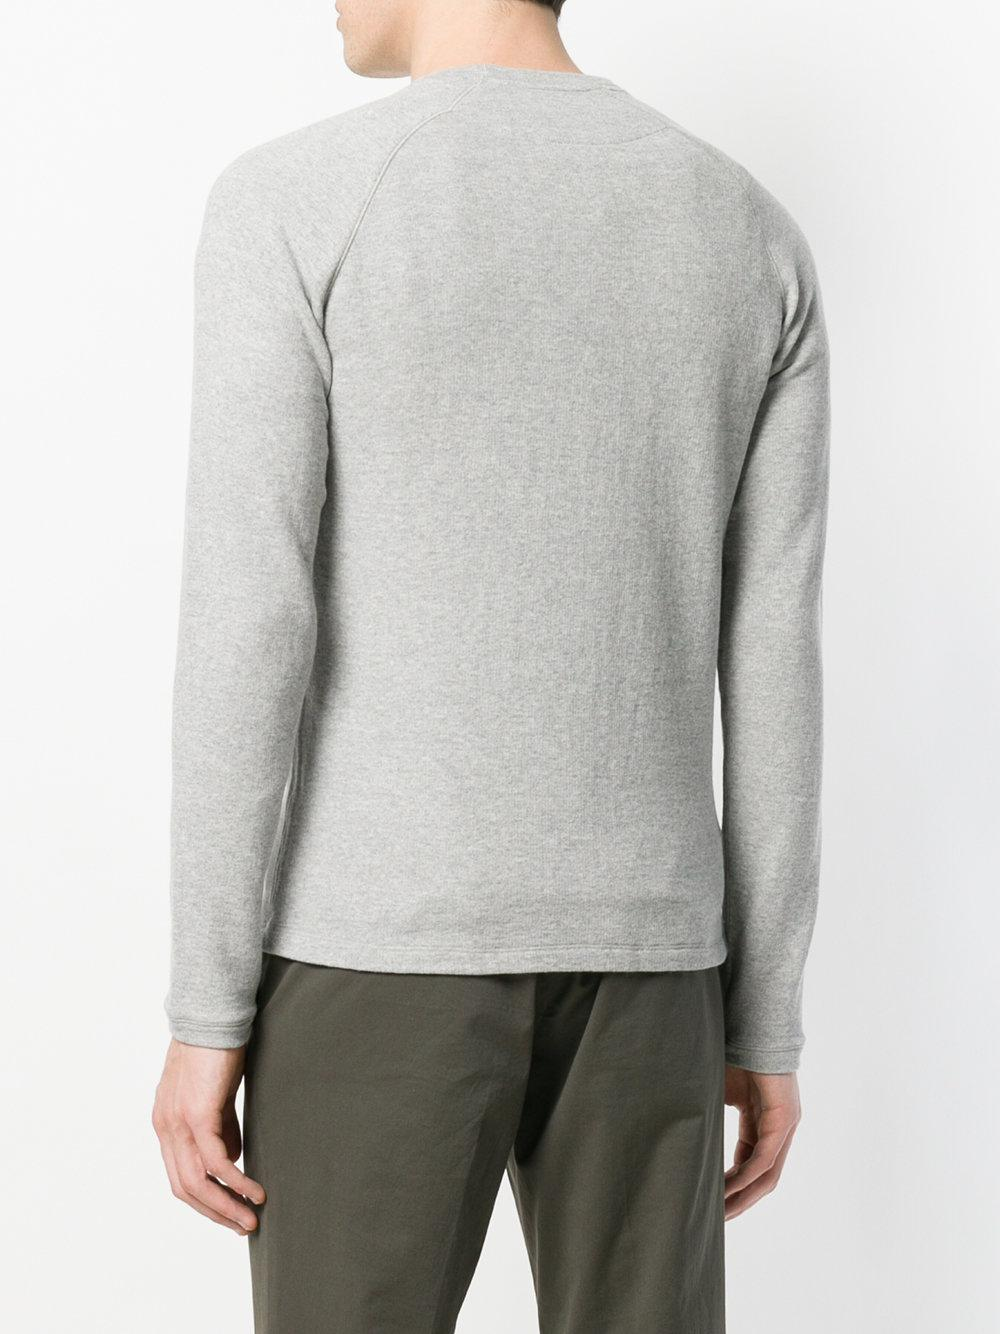 Release Dates Cheap Online marl effect sweatshirt - Grey Aspesi For Sale Free Shipping lojAwLG